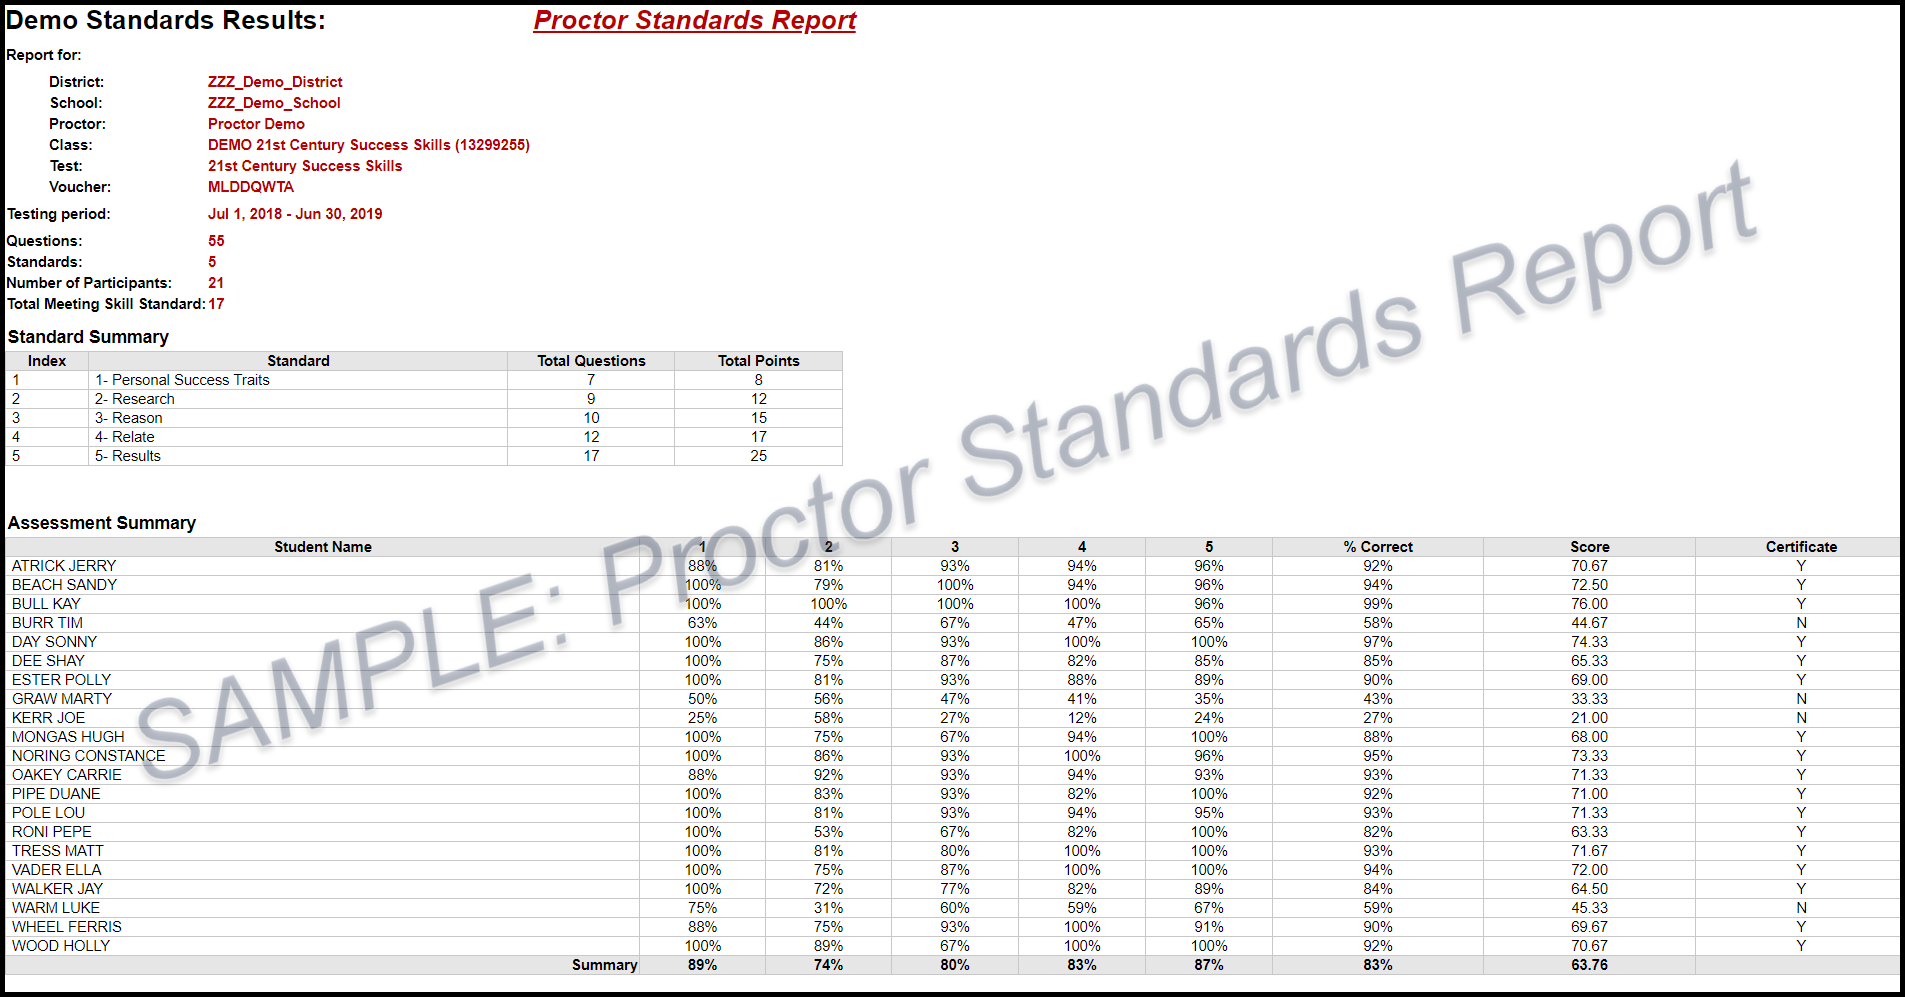 Sample Proctor Standards Report